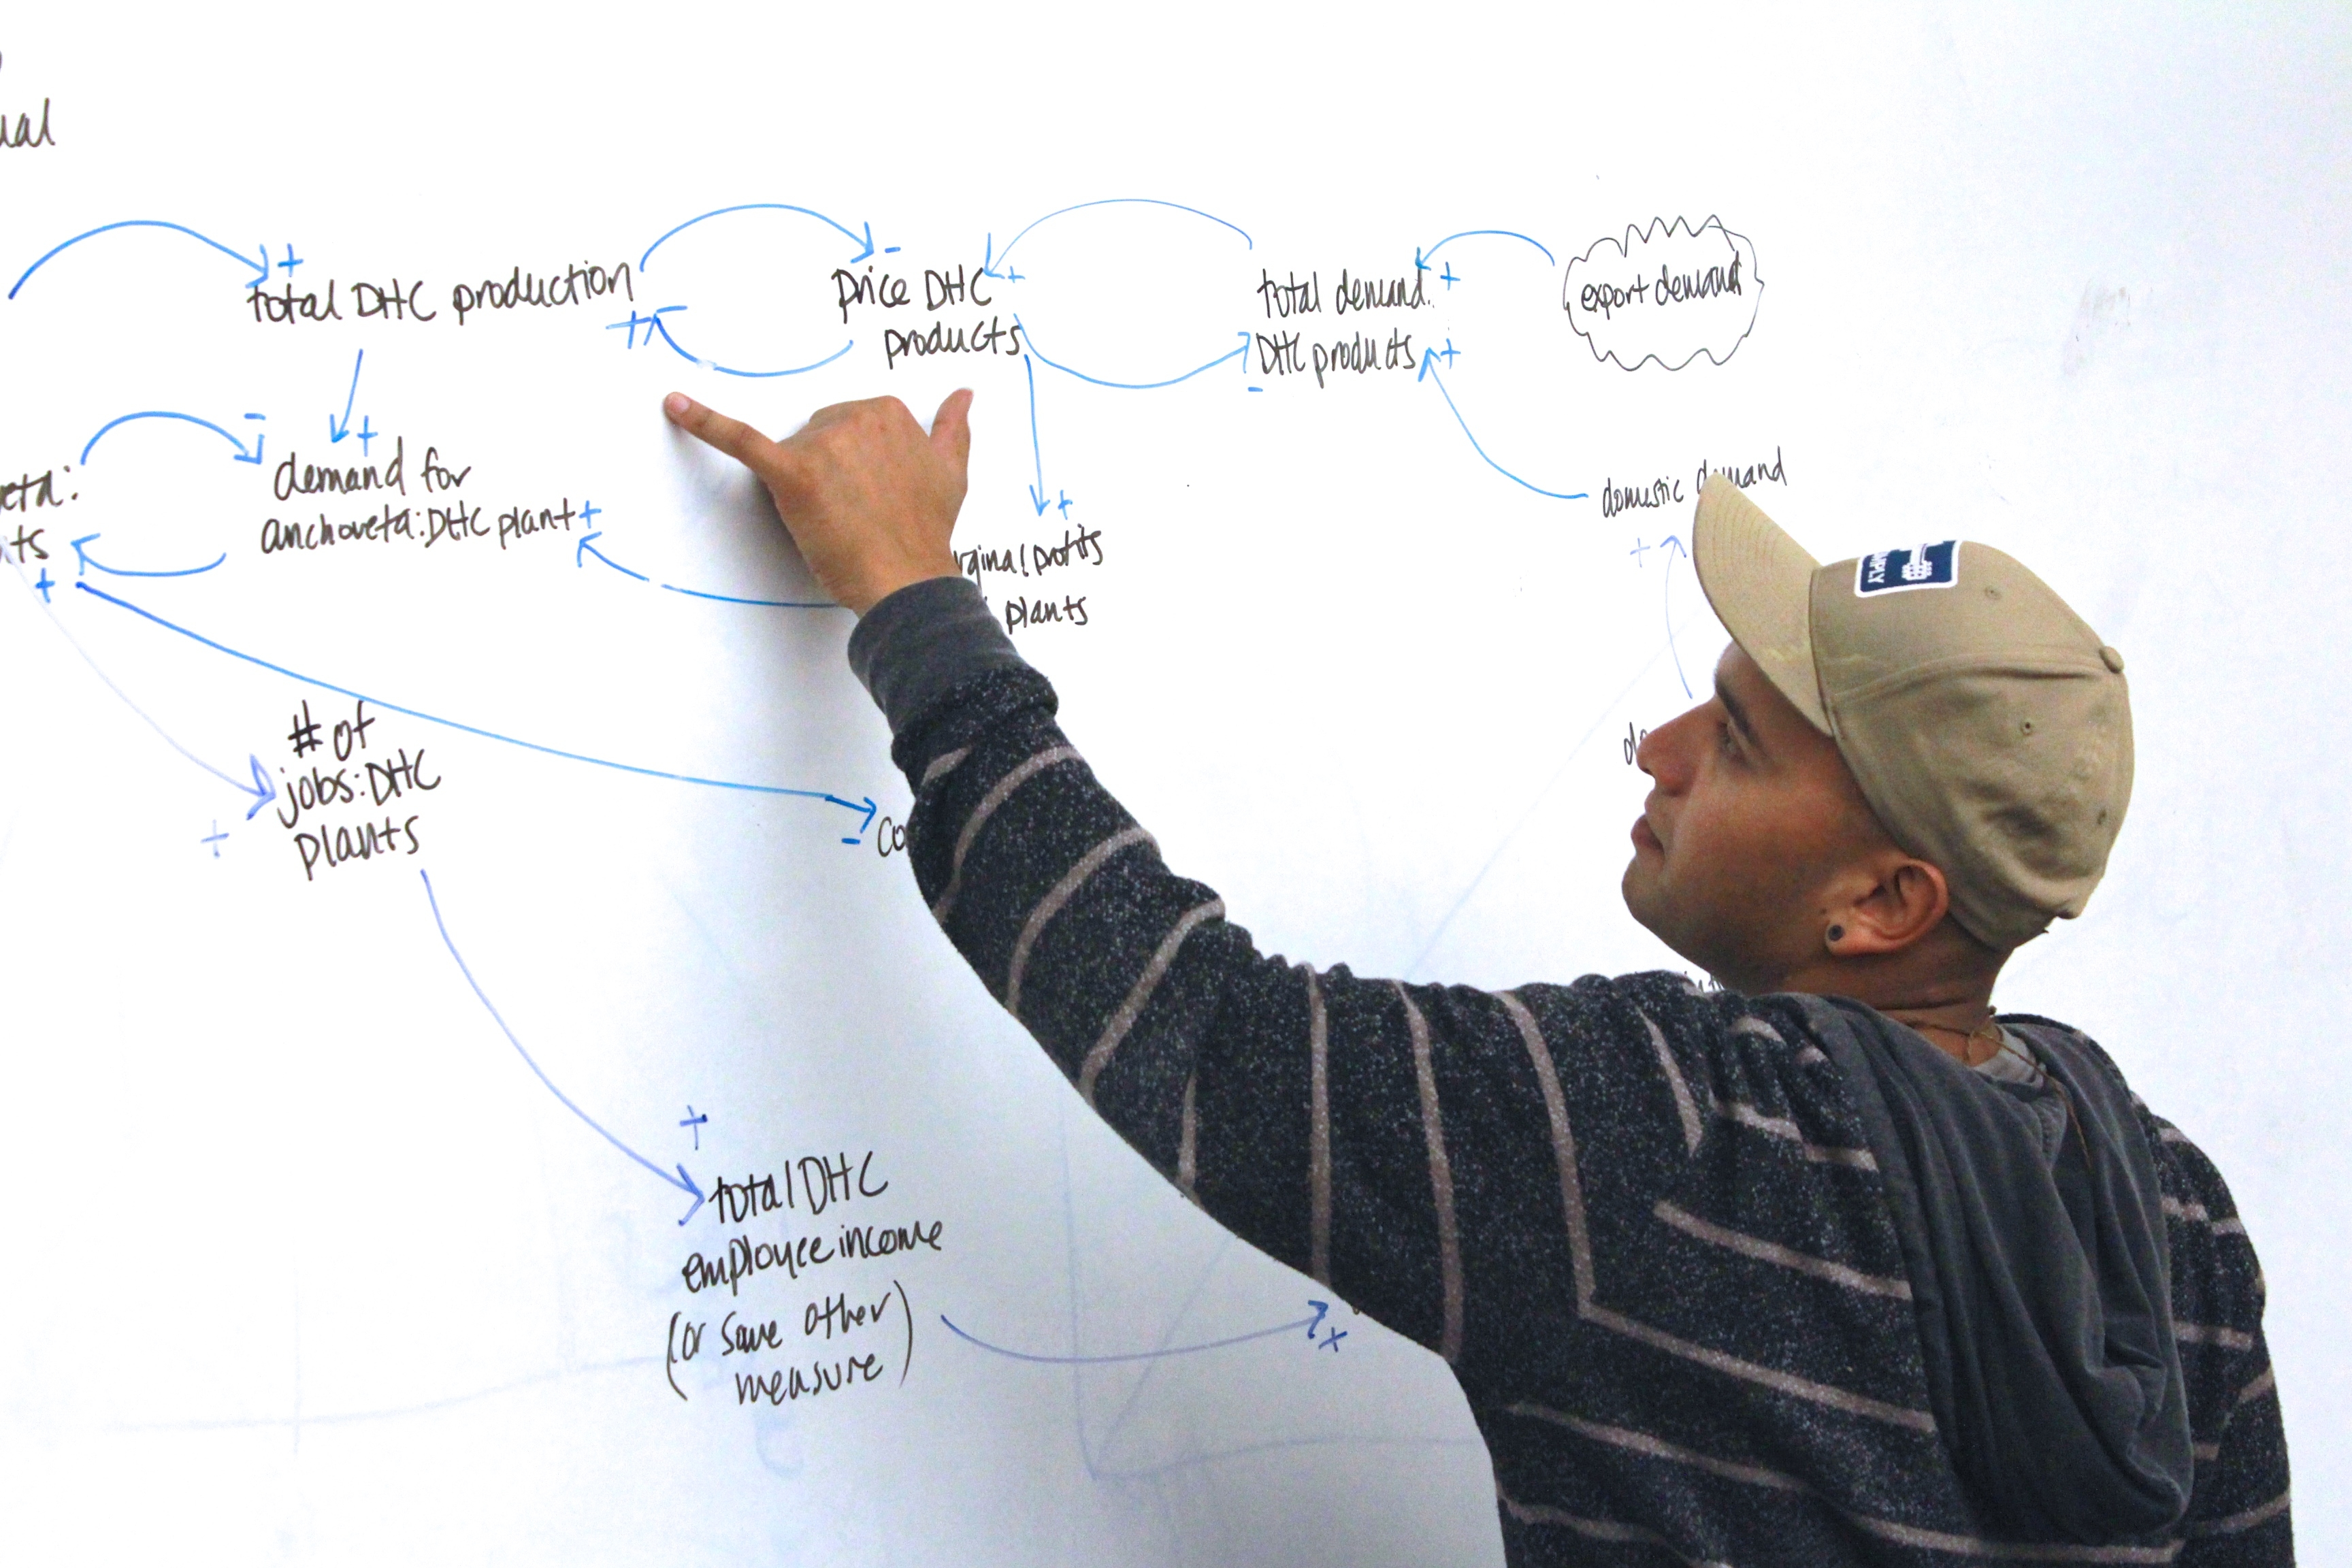 Renato working on systems thinking for Anchoveta project